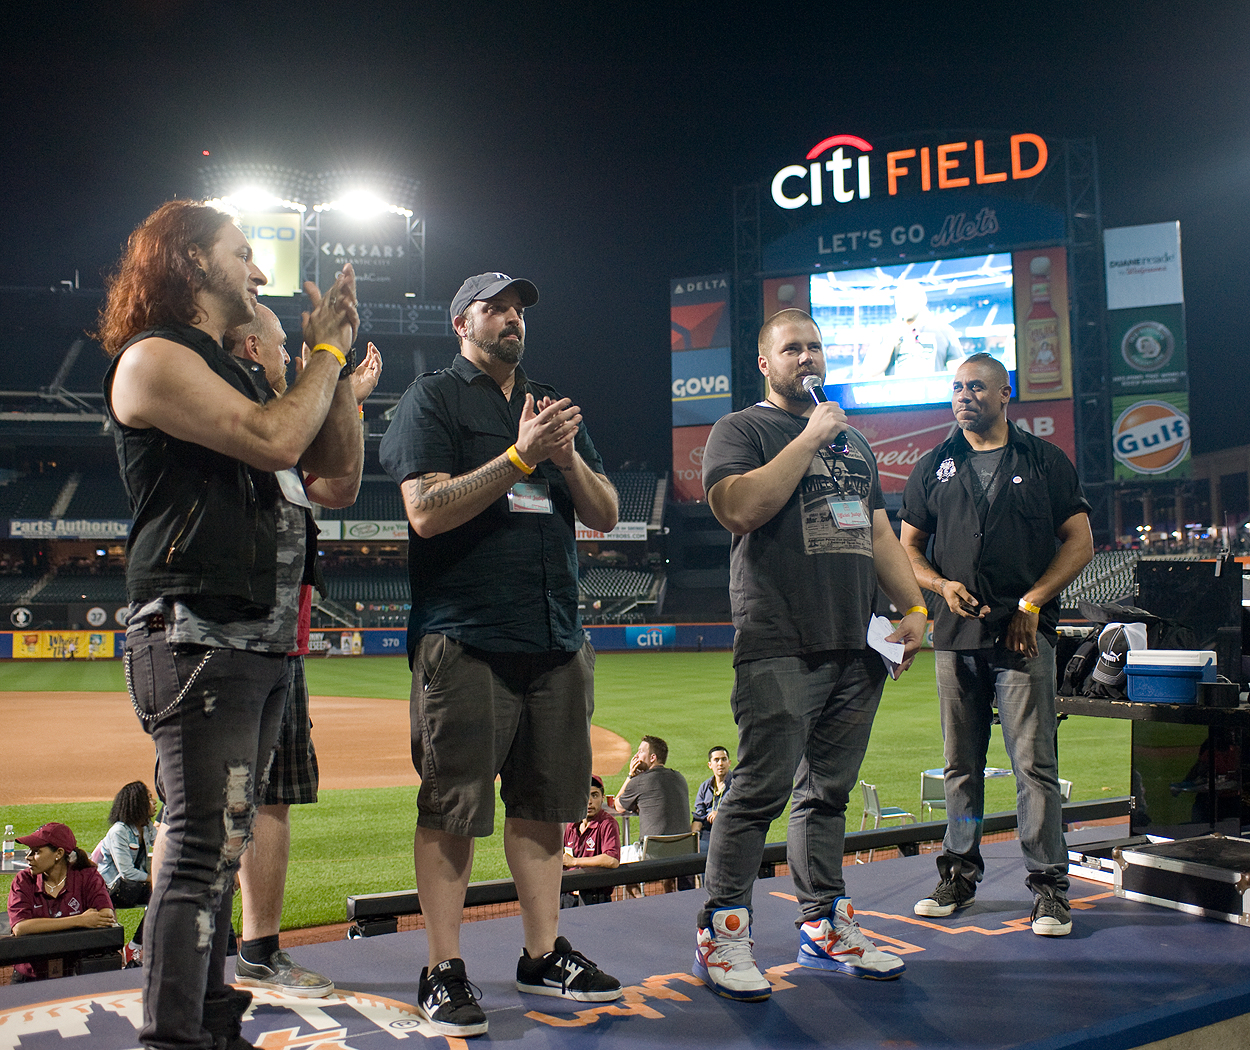 bacon_and_beer_classic_nyc_citi_field_2014_burger_conquest_winners_photos_information_53